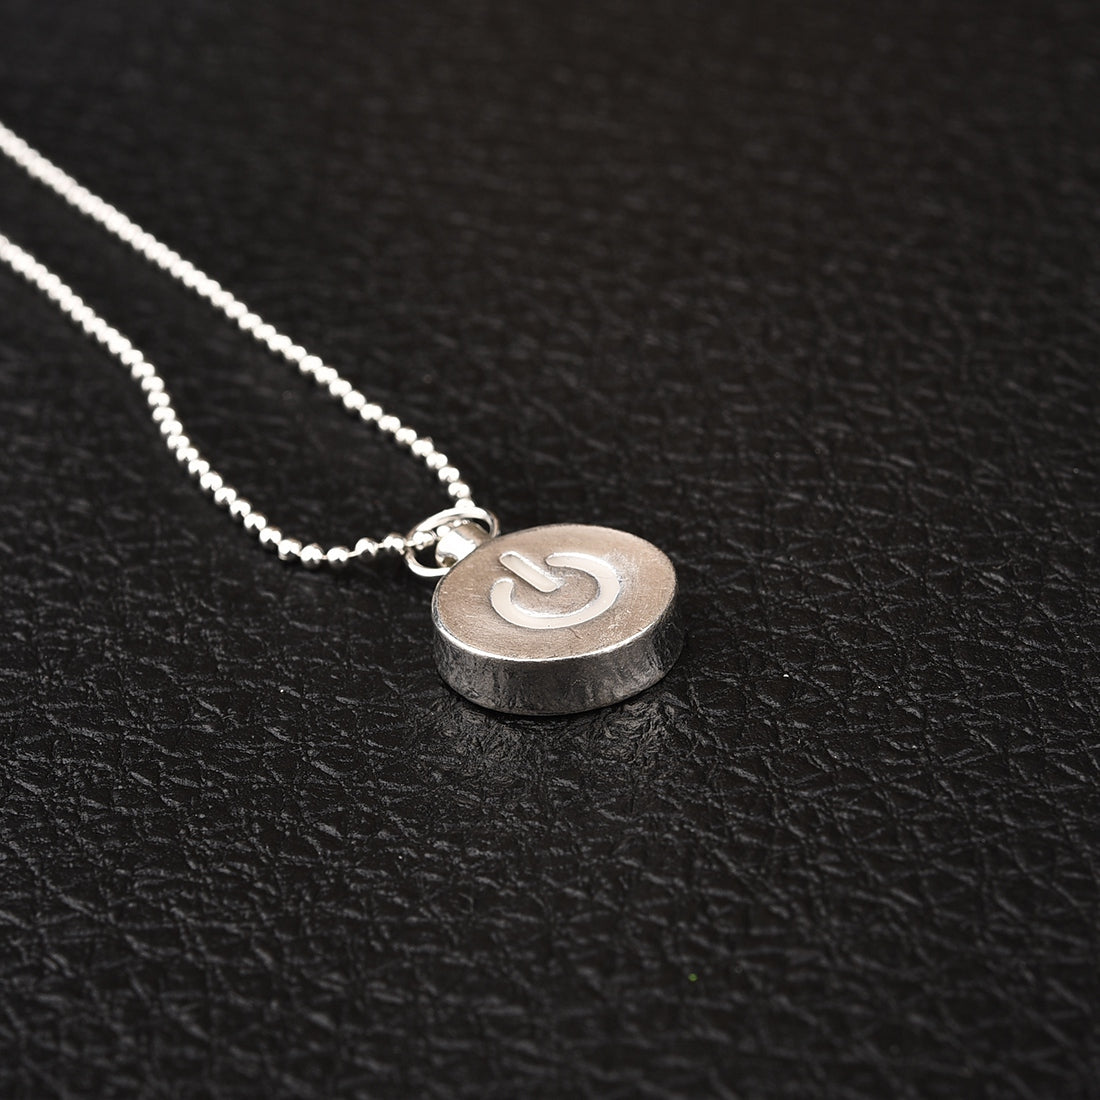 Power button glow in the dark necklace fanduco power button glow in the dark necklace mozeypictures Image collections